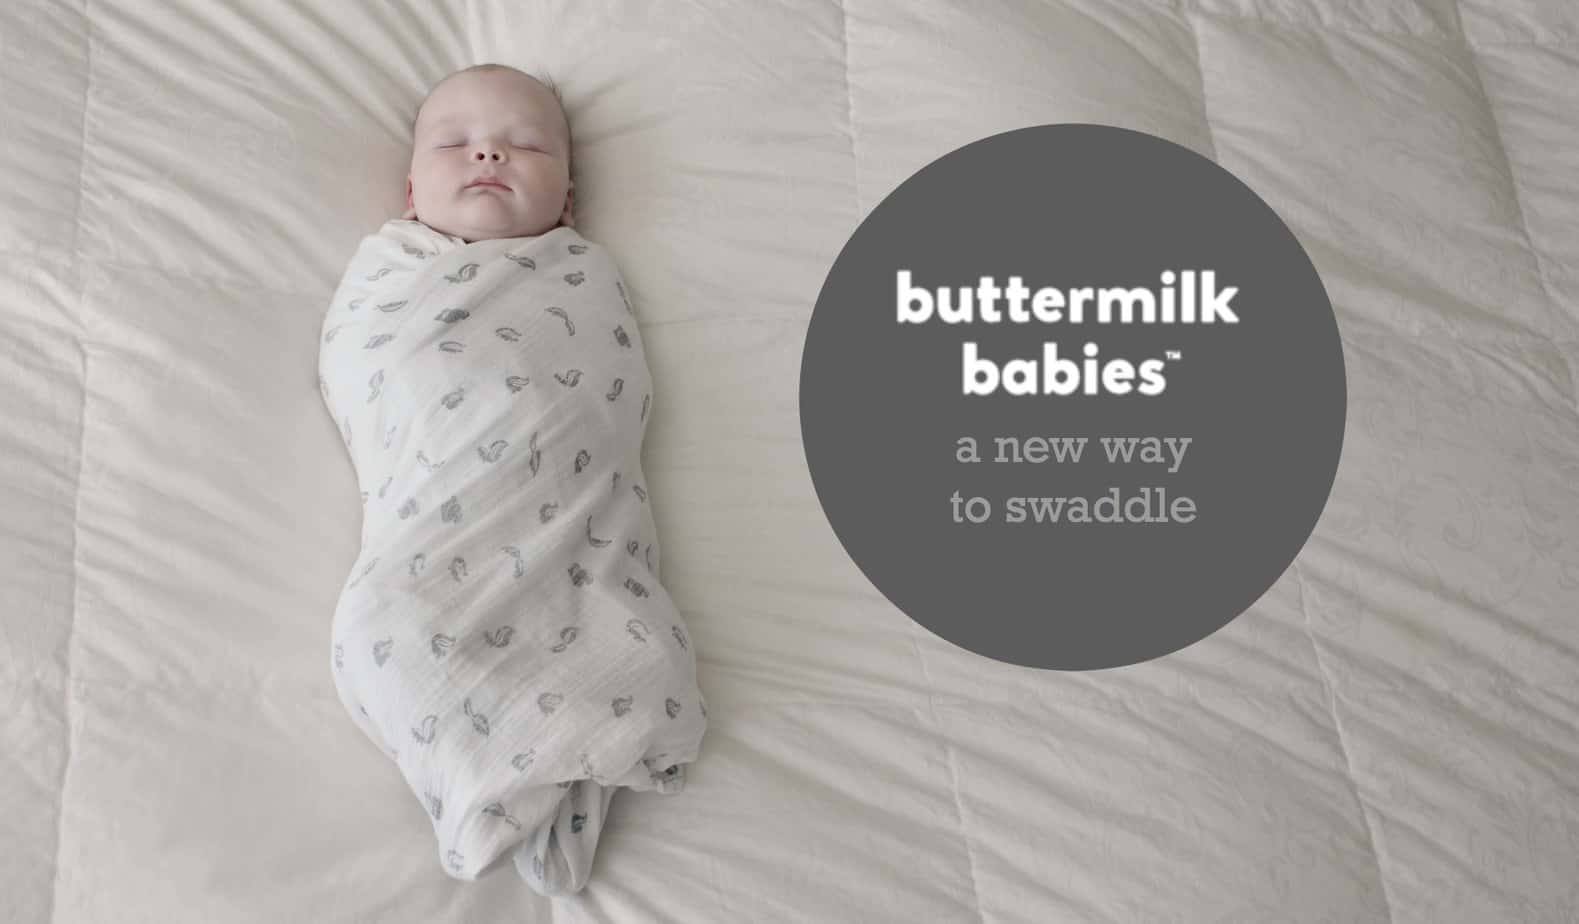 Buttermilk Babies: A New Way To Swaddle 1